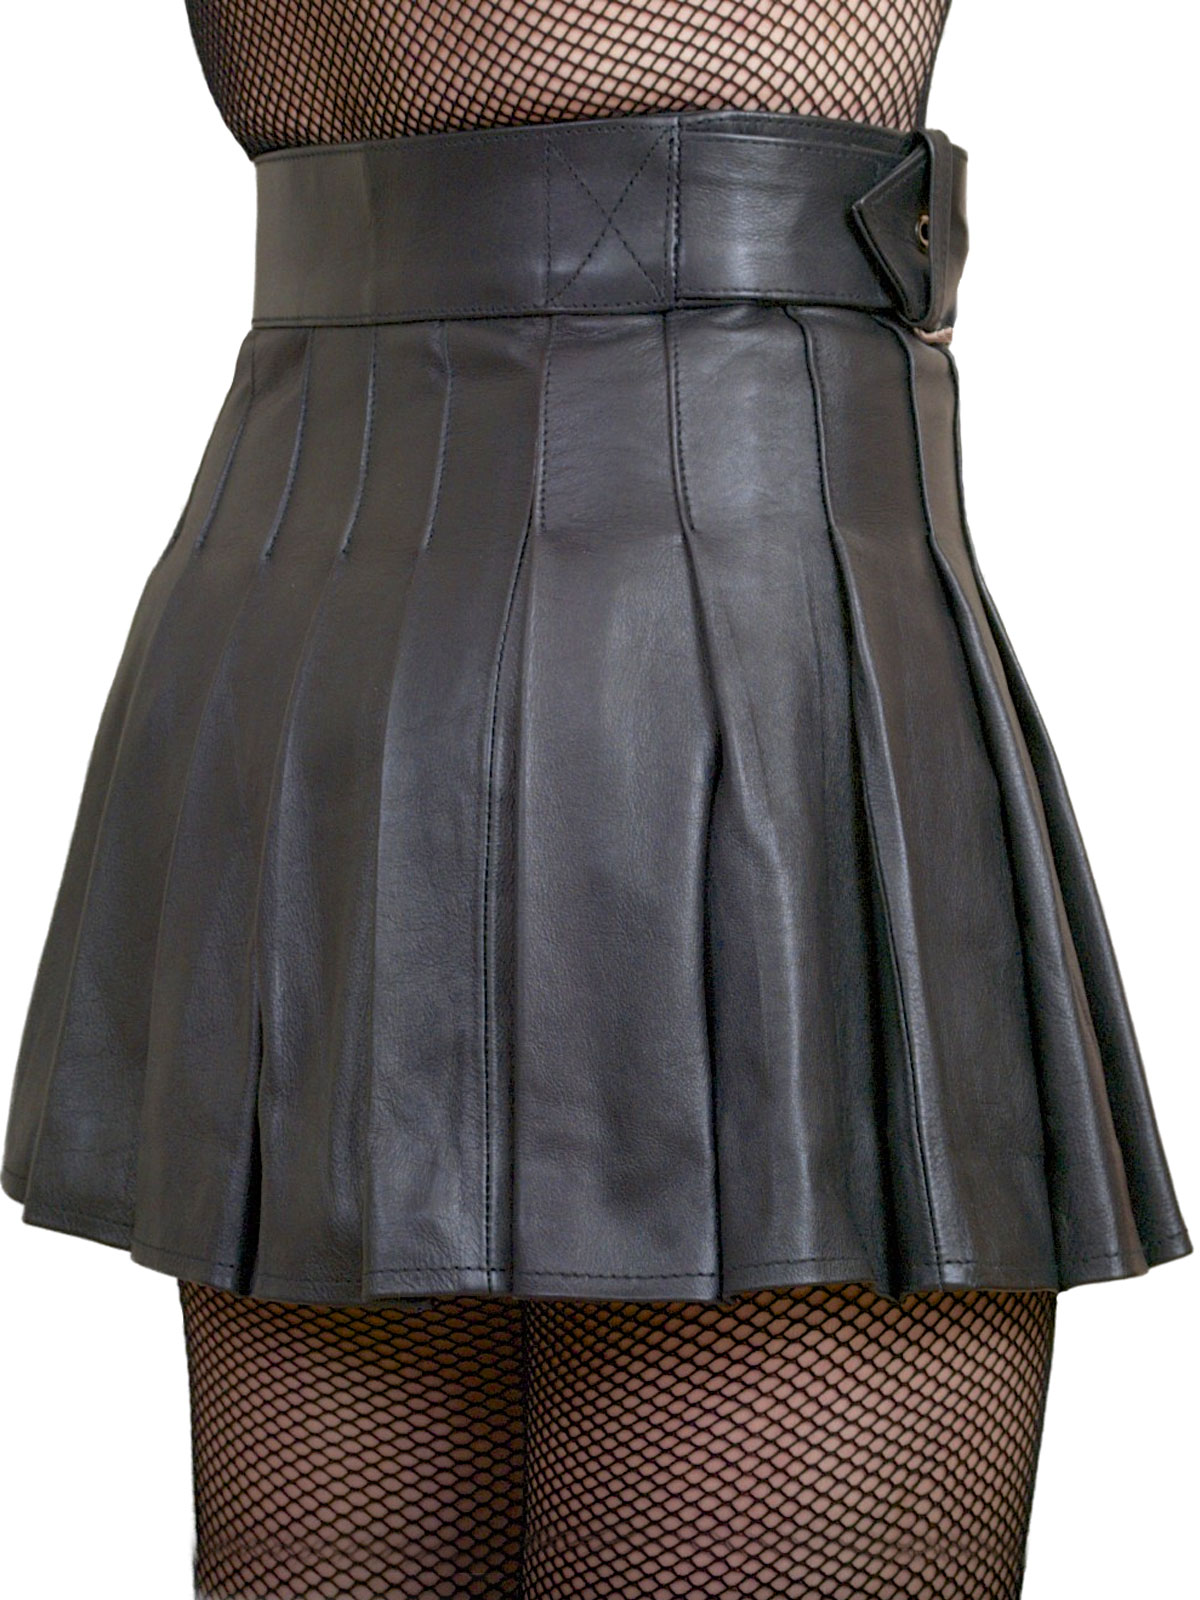 Wrap Around Leather Mini Skirt Kilt Tout Ensemble